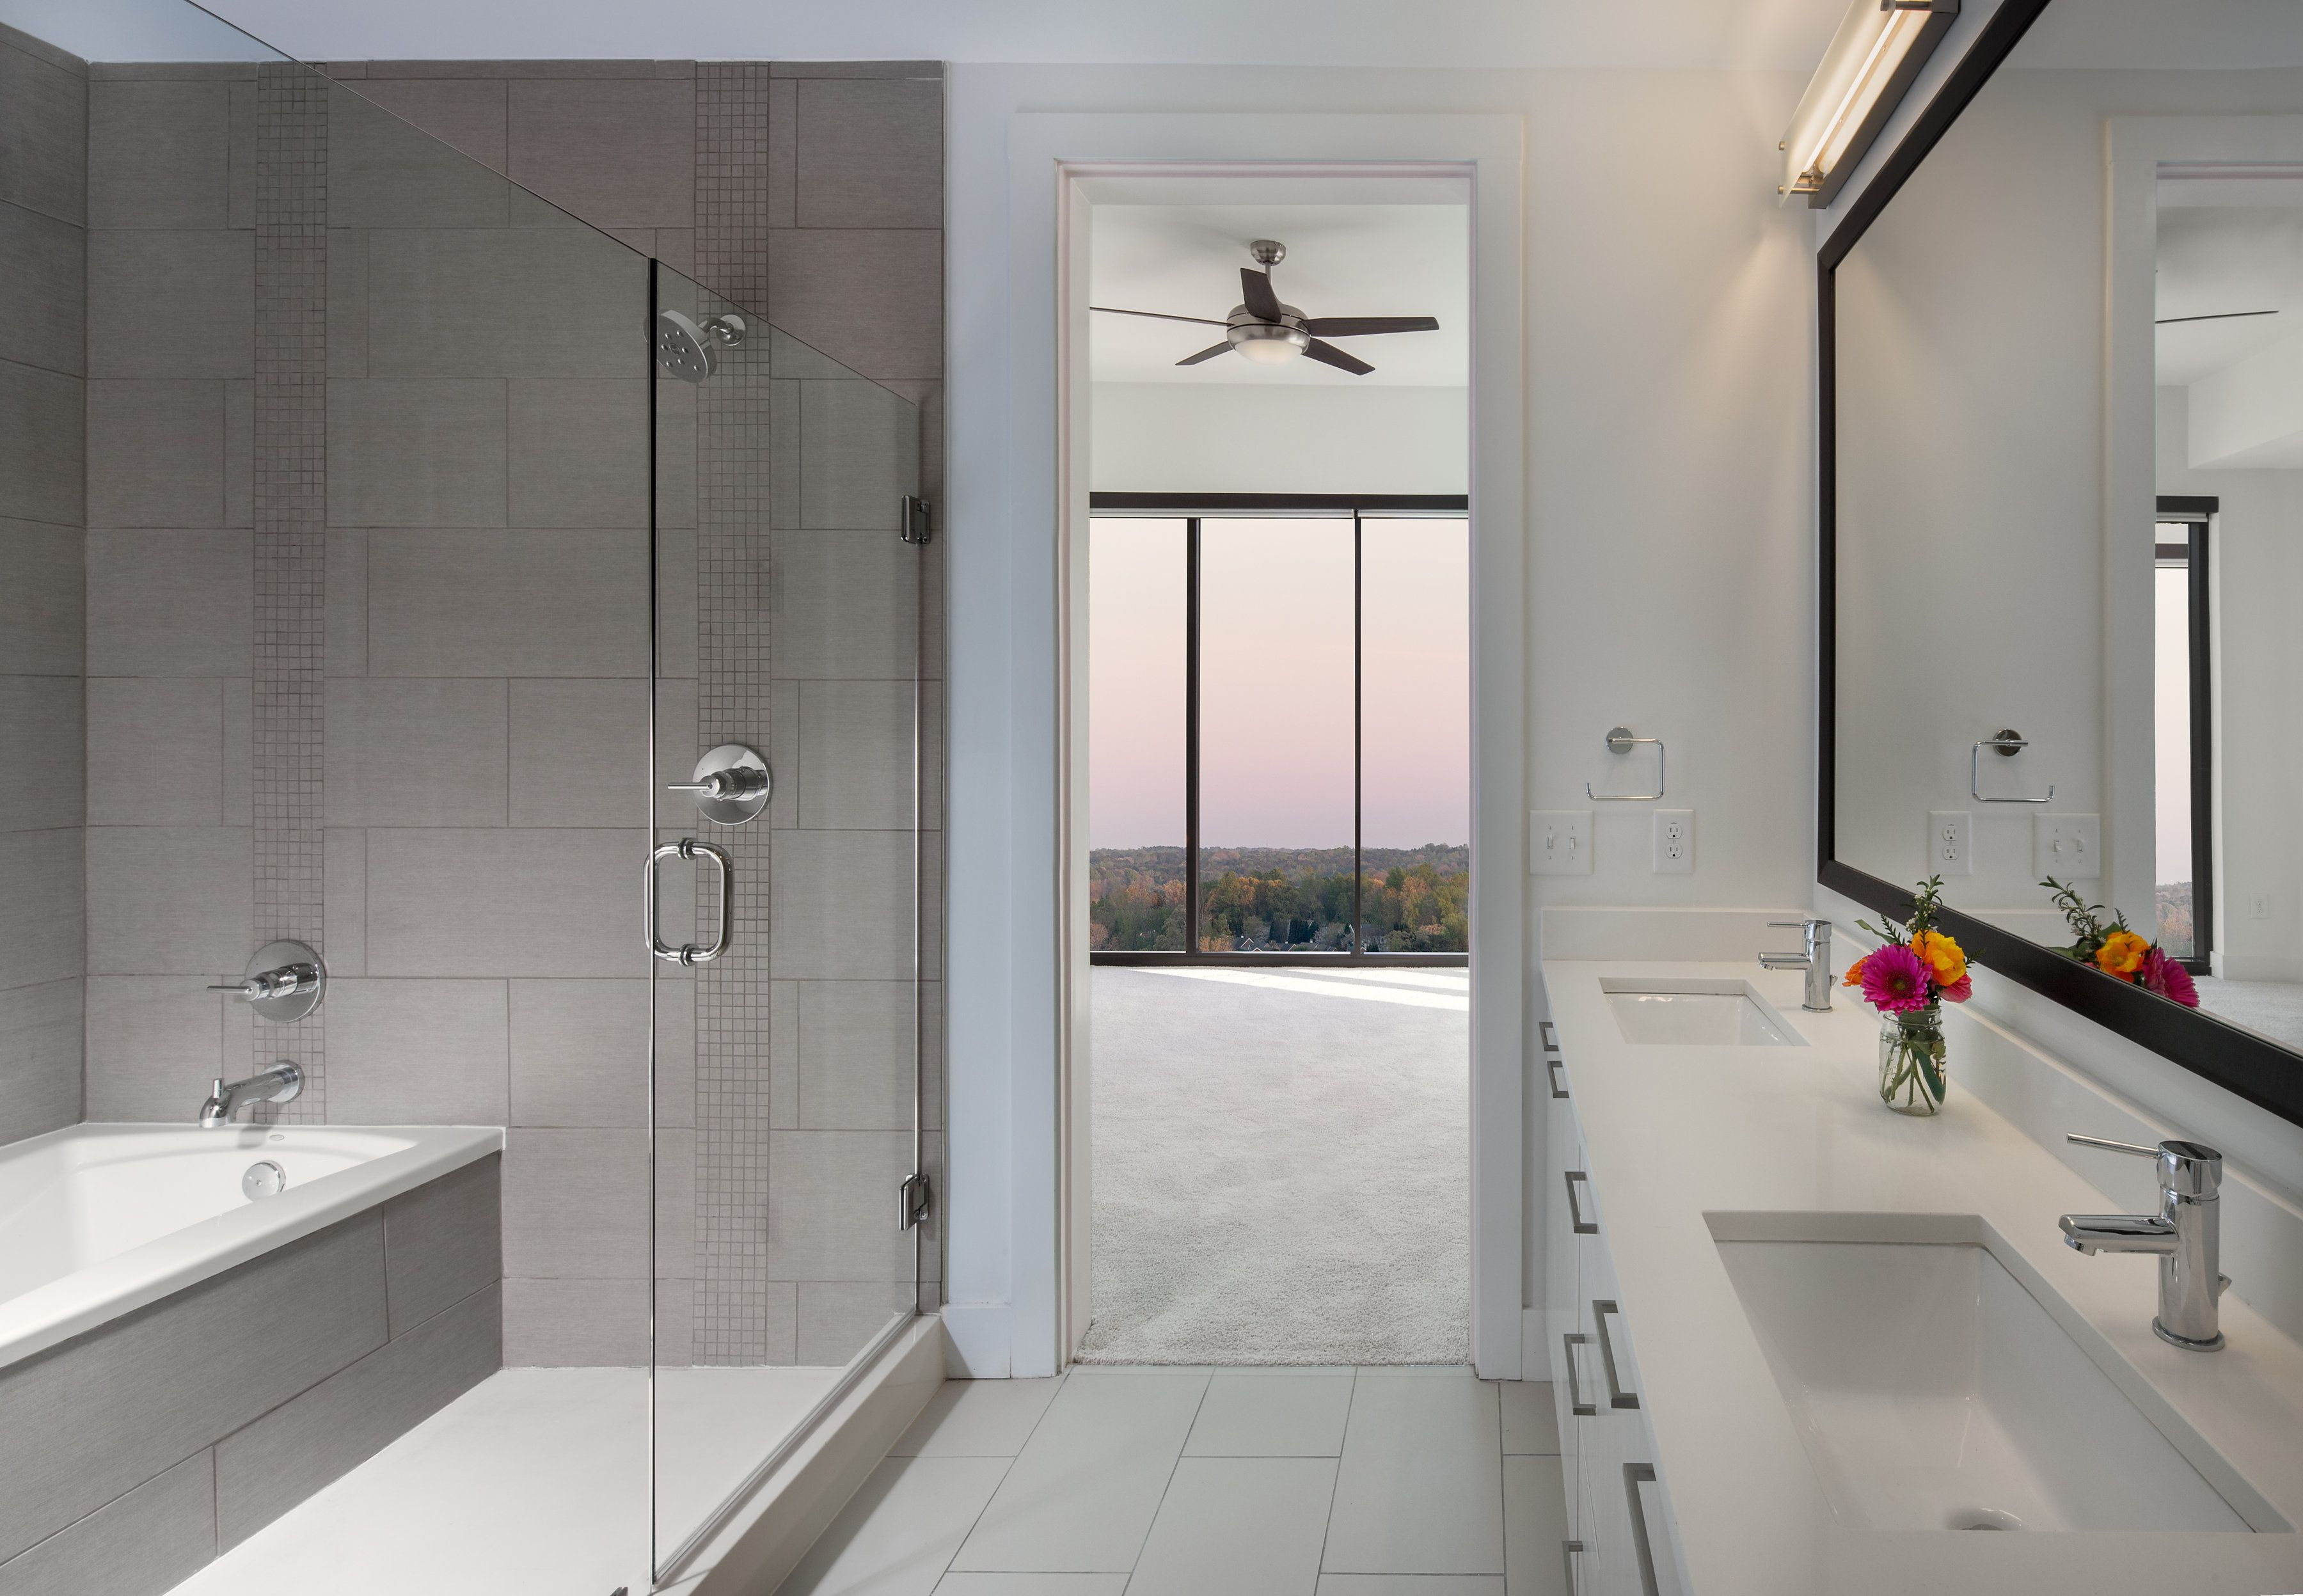 A frameless glass shower, tub, and double sinks round out this flawless, contemporary modern bathroom.